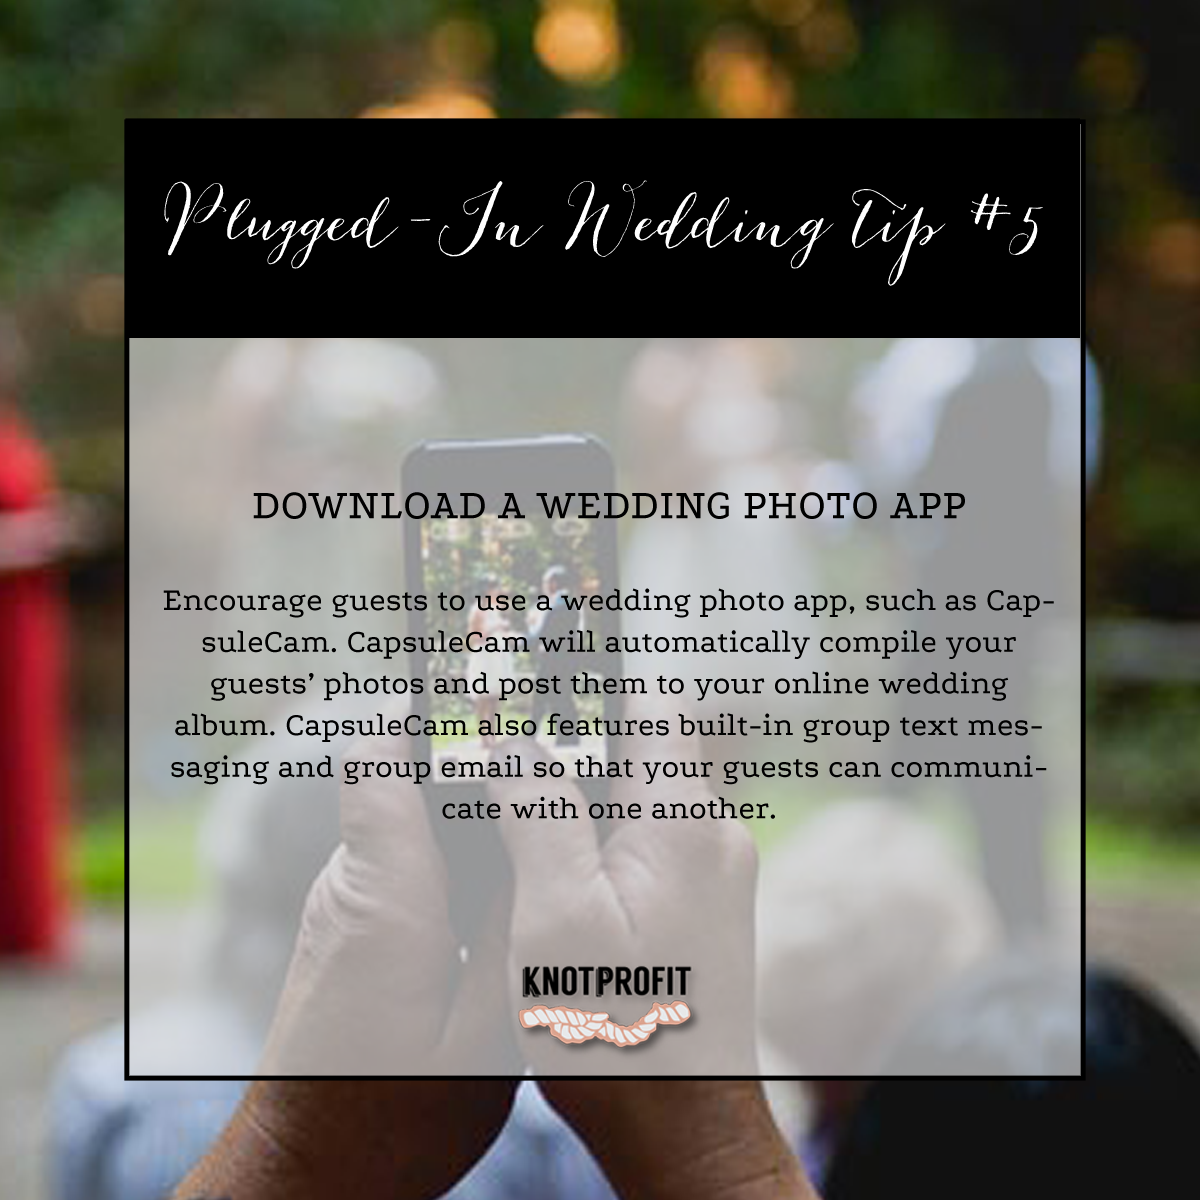 Tips for a plugged-in #wedding: http://knotprofit.com/blog/plugged-in-wedding/